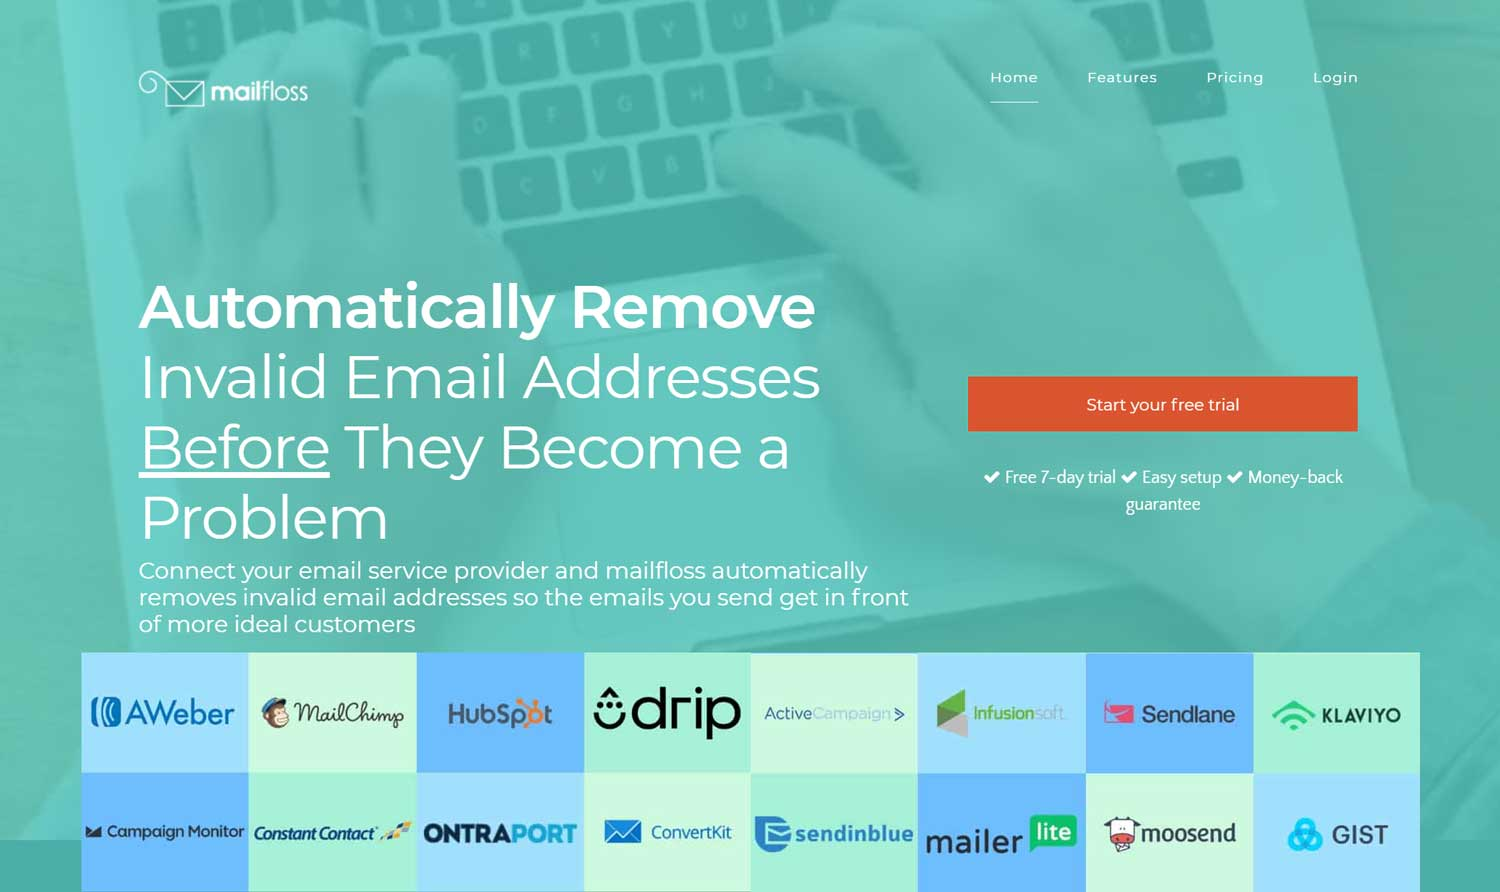 Try out Mailfloss for flawless automation of email verification